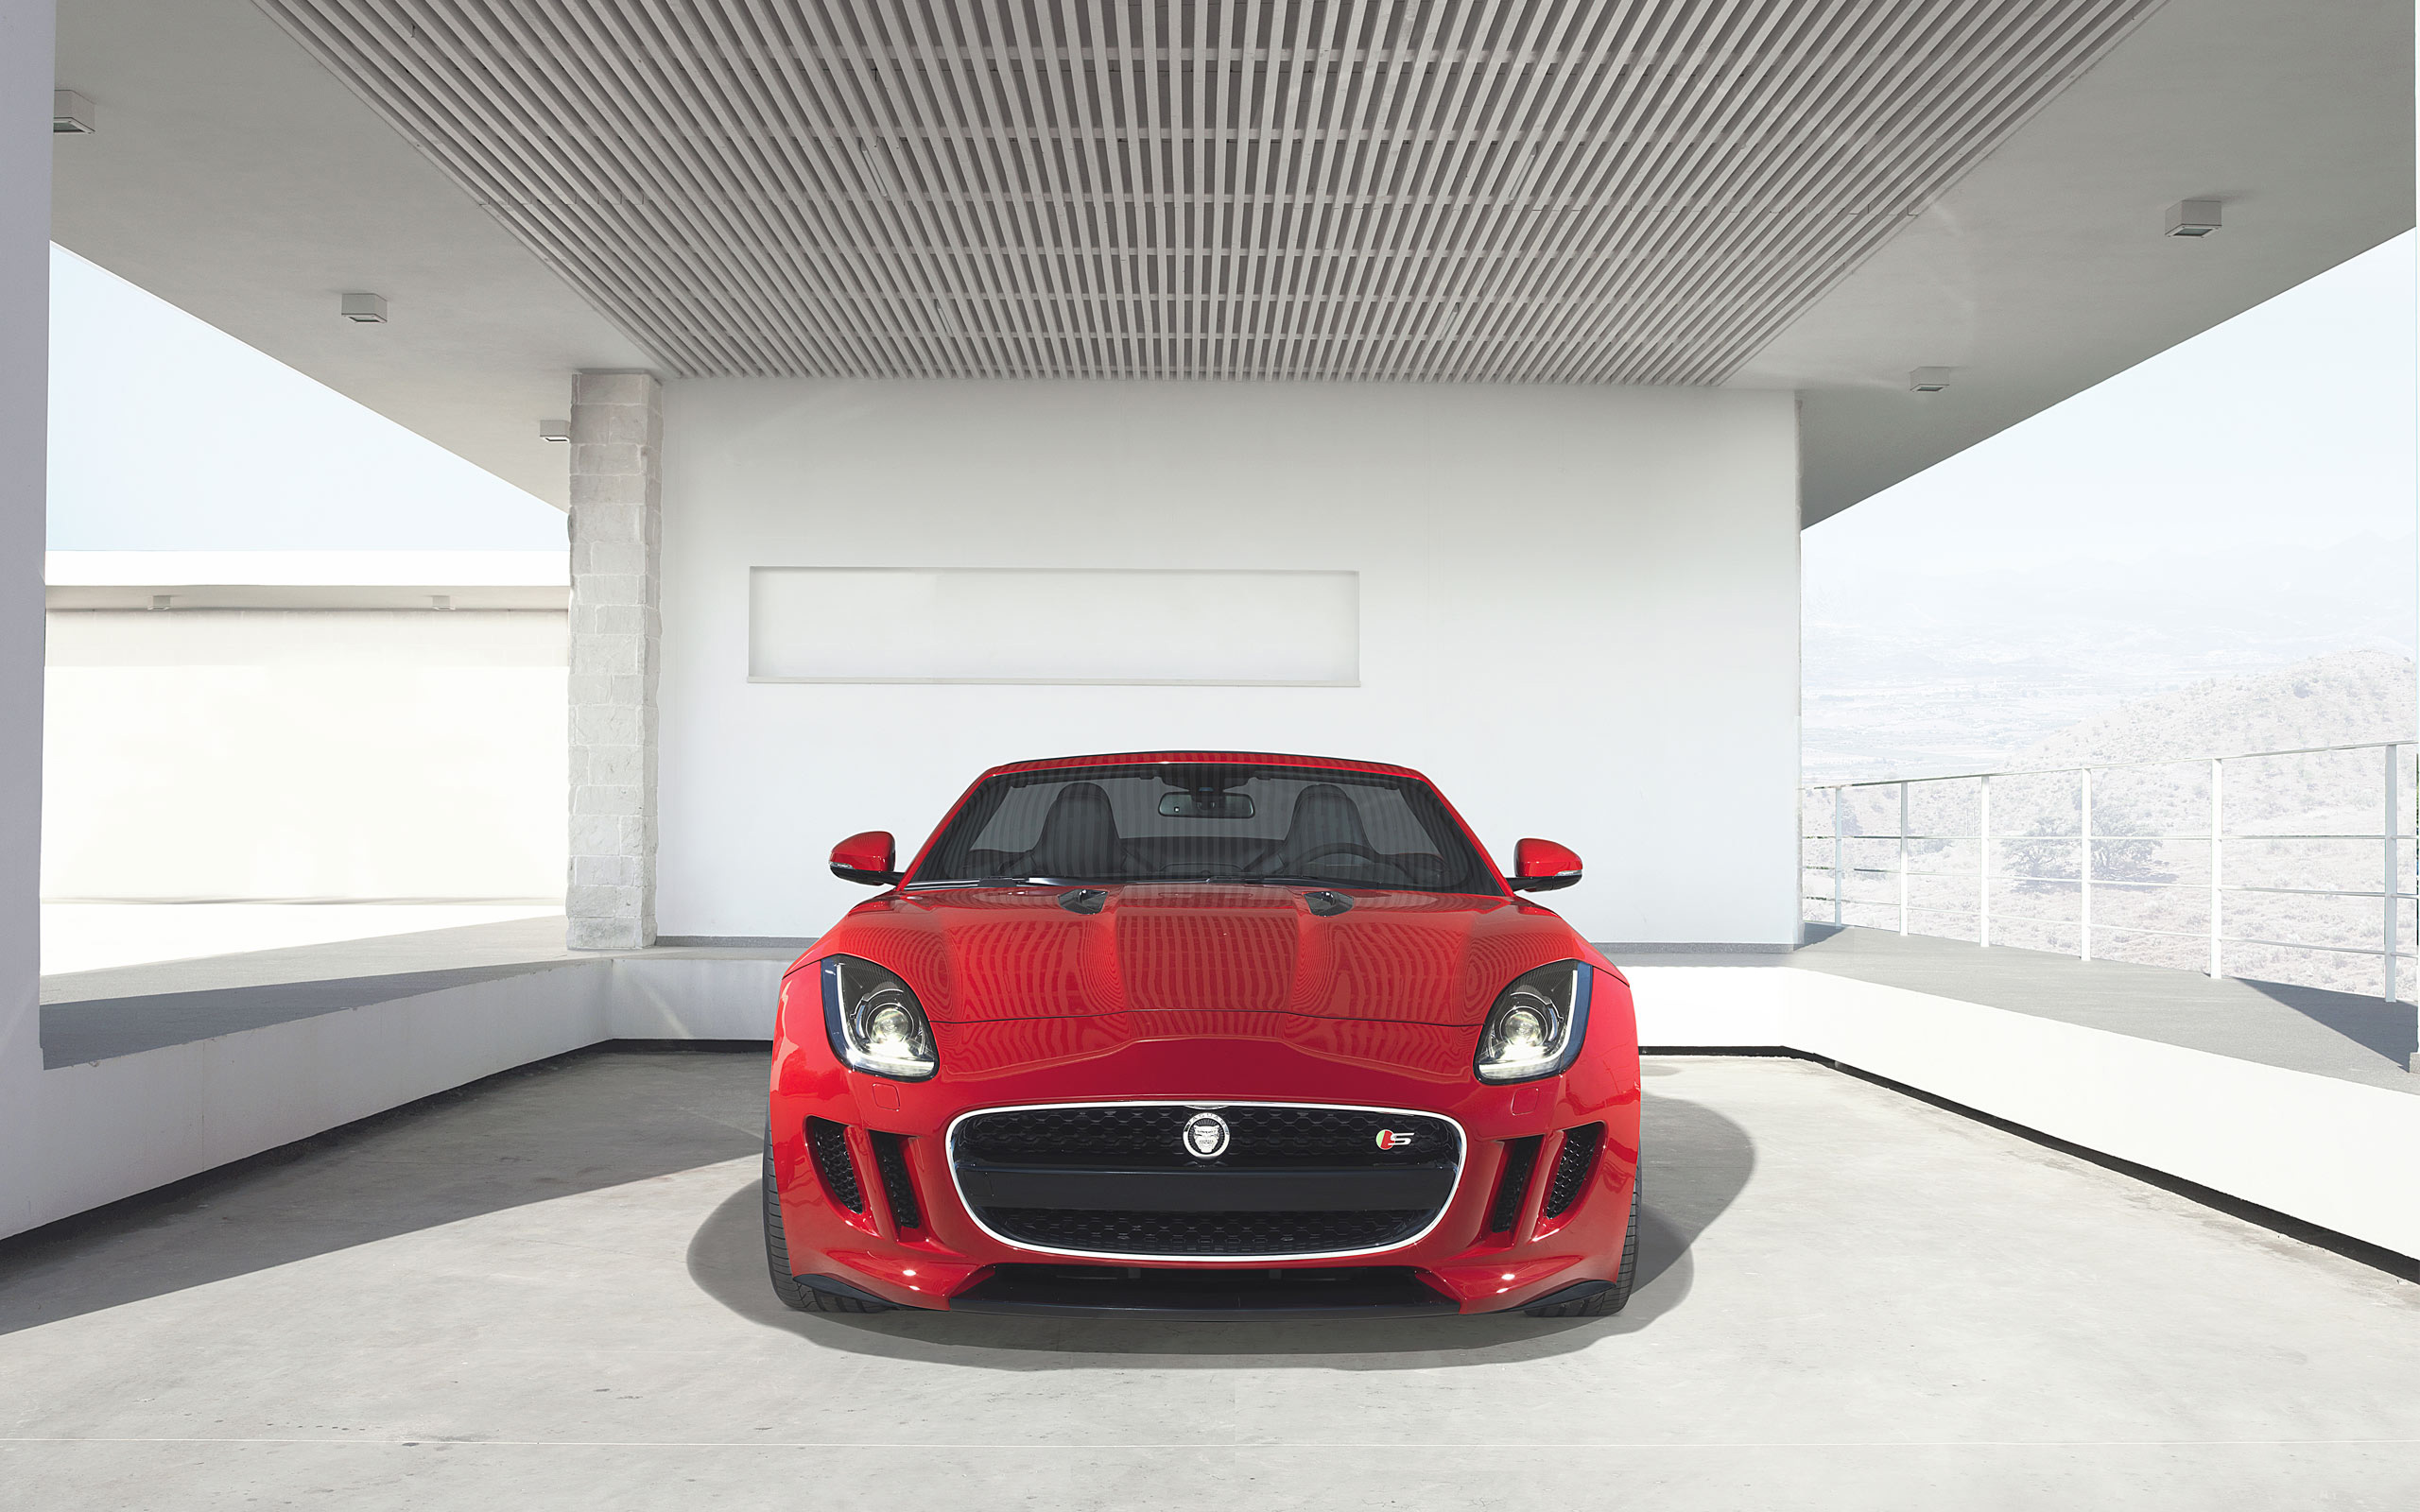 2014 jaguar f type 2 wallpaper | hd car wallpapers | id #3067